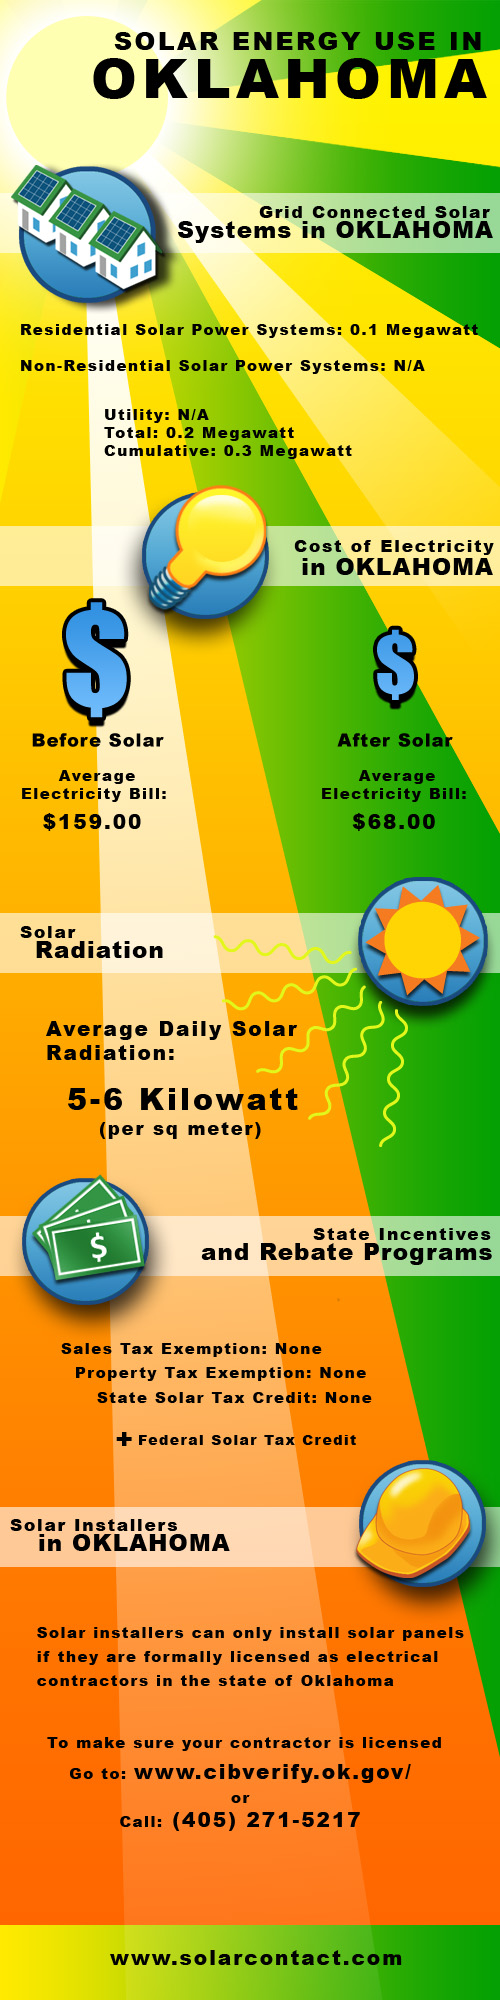 Fact Sheet Solar Energy Use in Oklahoma